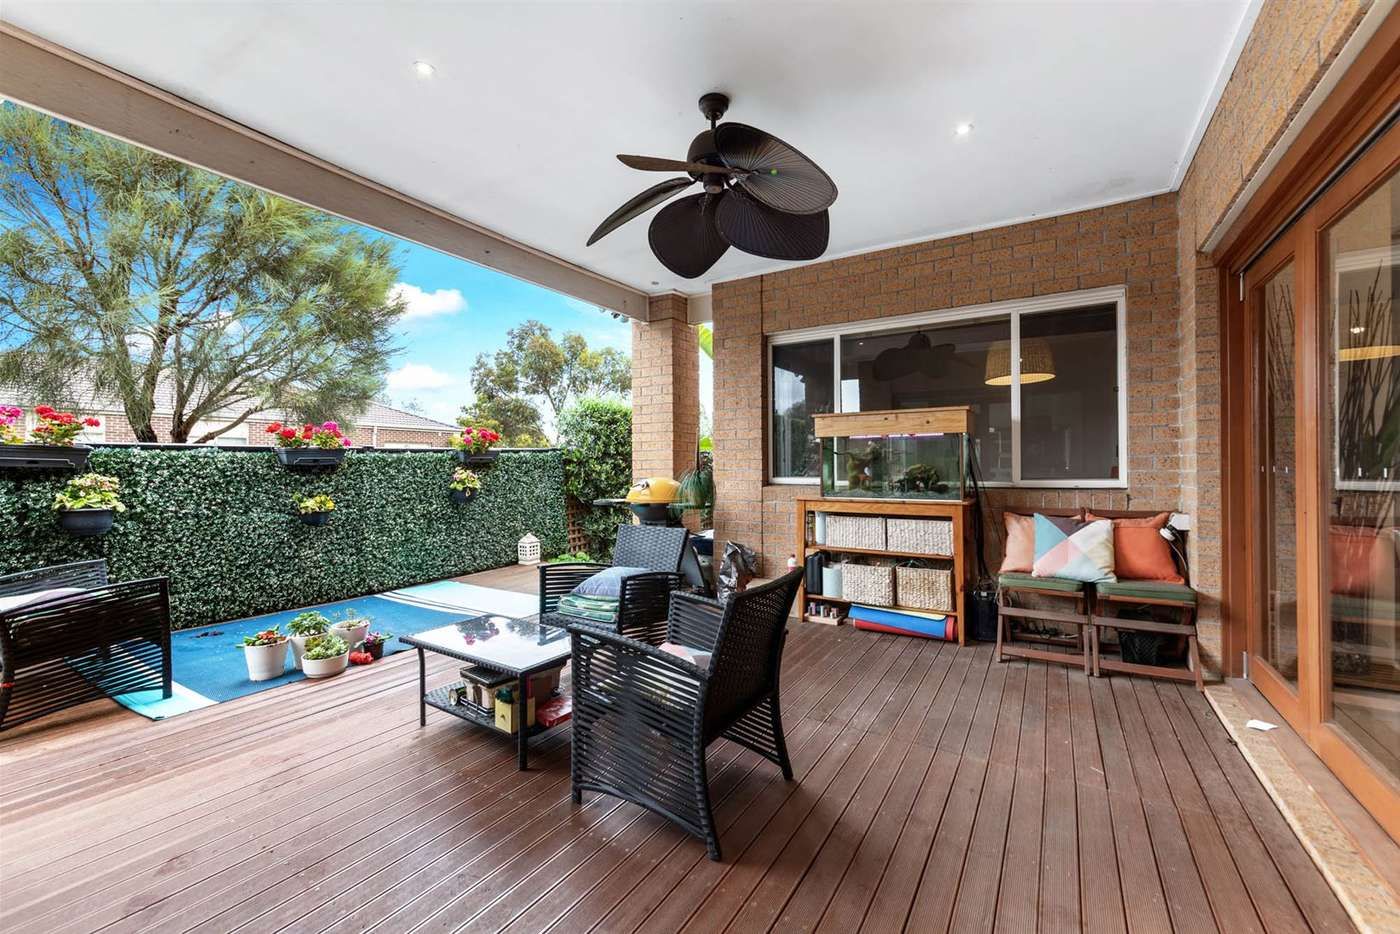 Sixth view of Homely house listing, 5 Camelot Drive, Tarneit VIC 3029